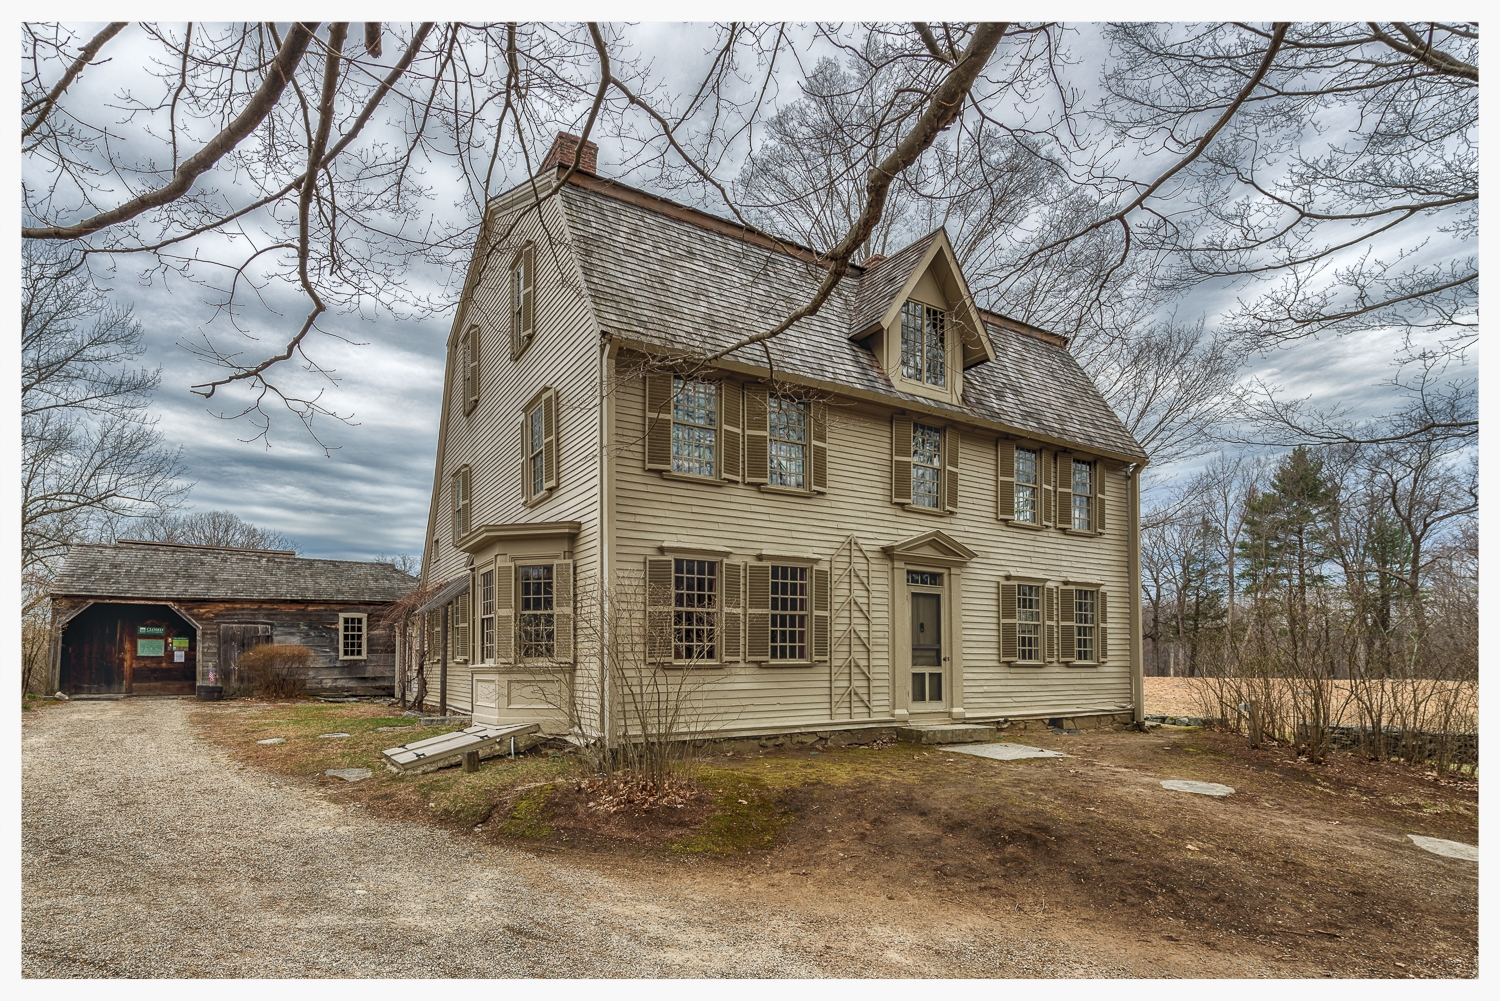 The Old Manse - 04.13.14_6888